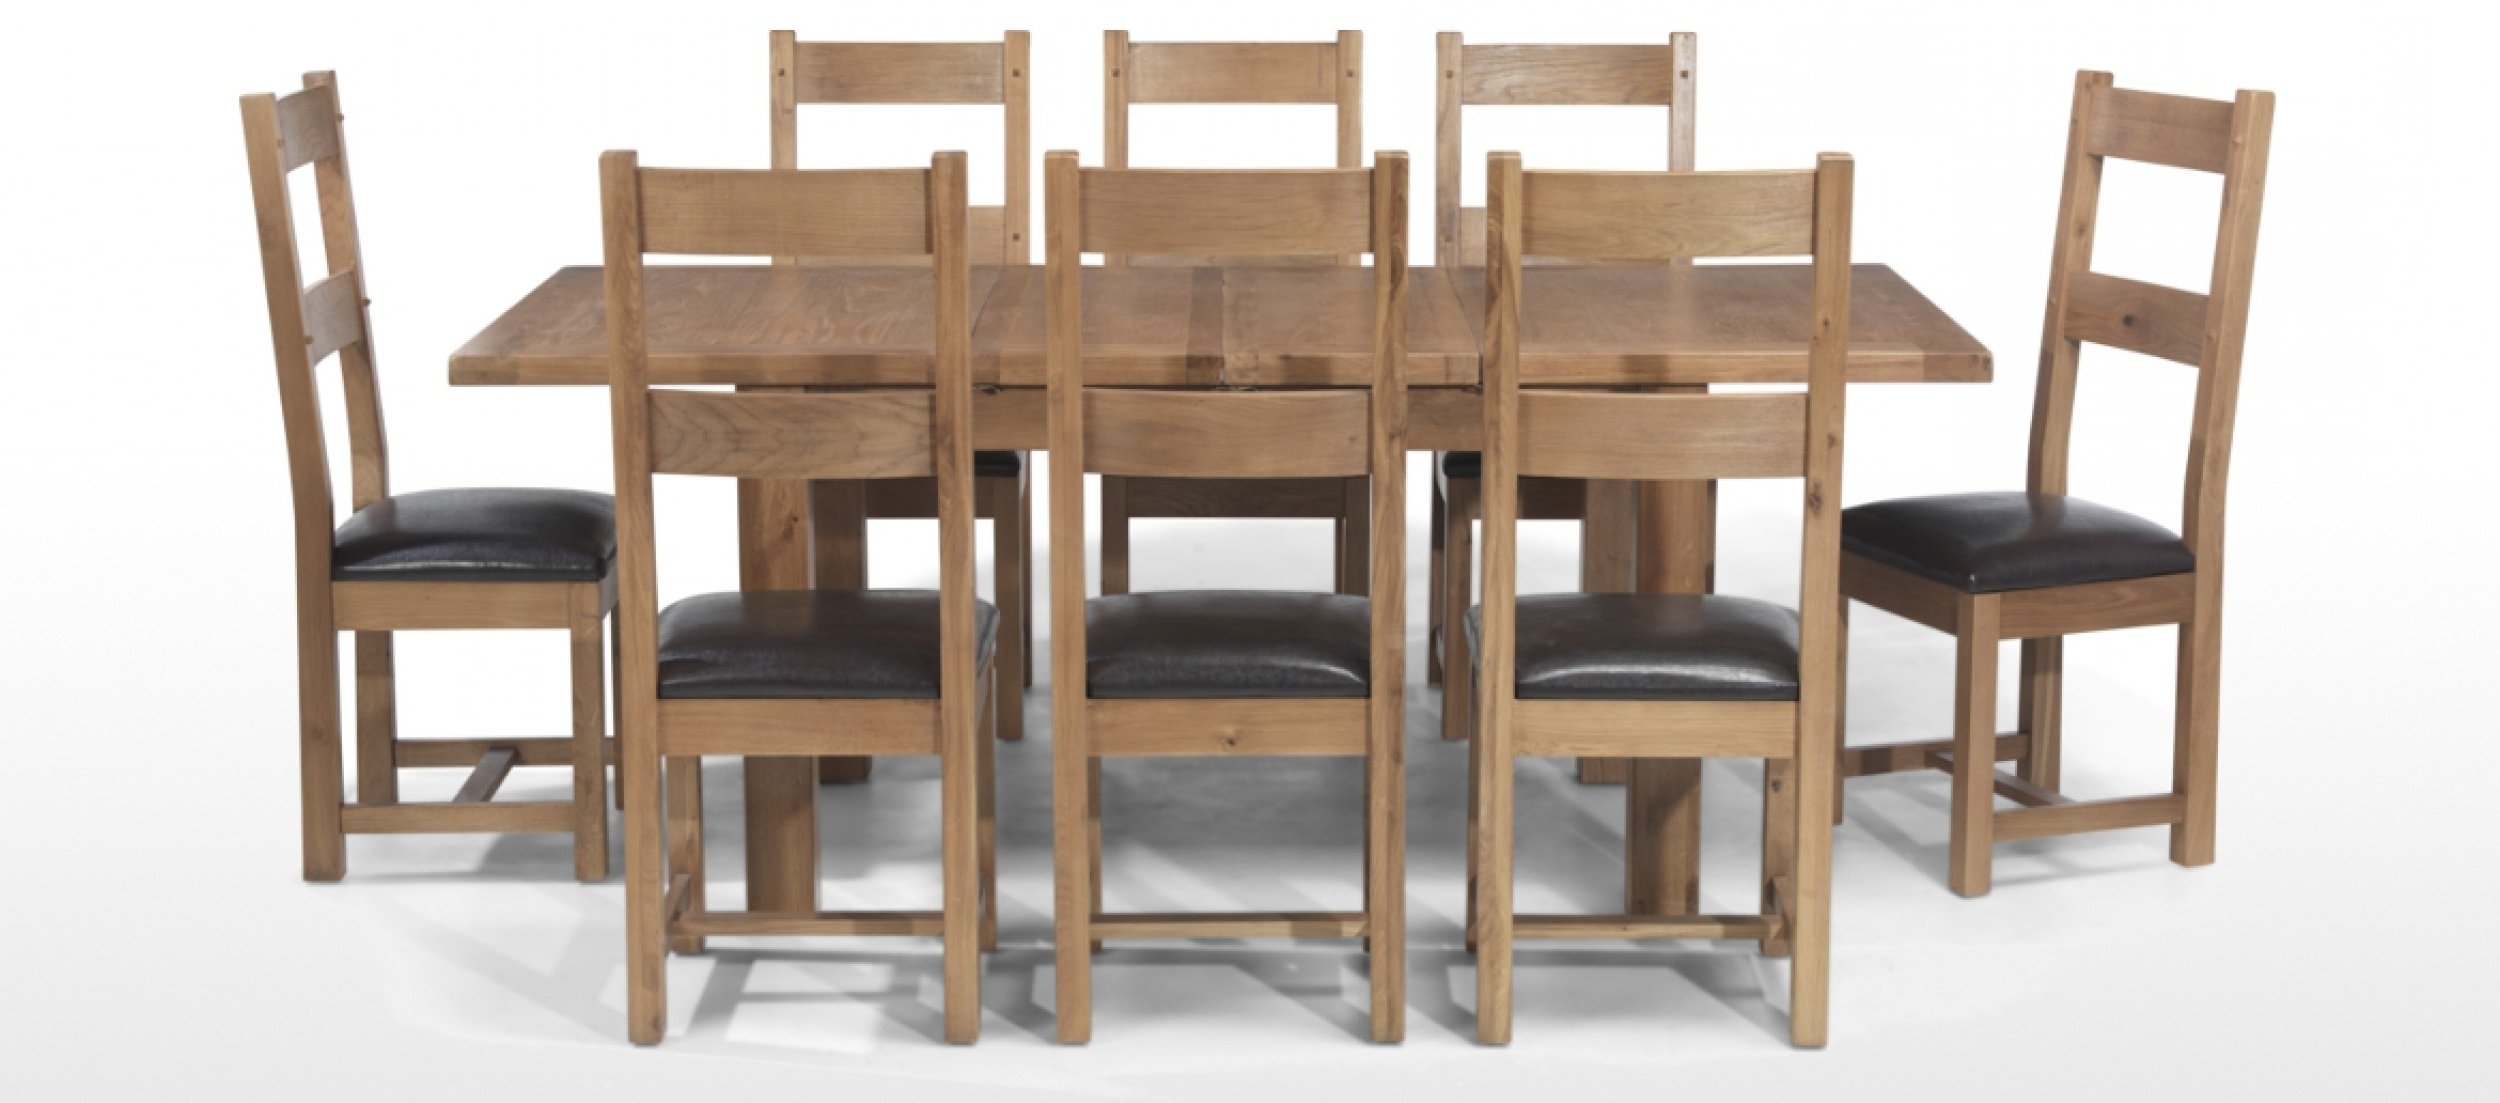 8 Dining Tables For Most Up To Date Rustic Oak 132 198 Cm Extending Dining Table And 8 Chairs (Gallery 22 of 25)